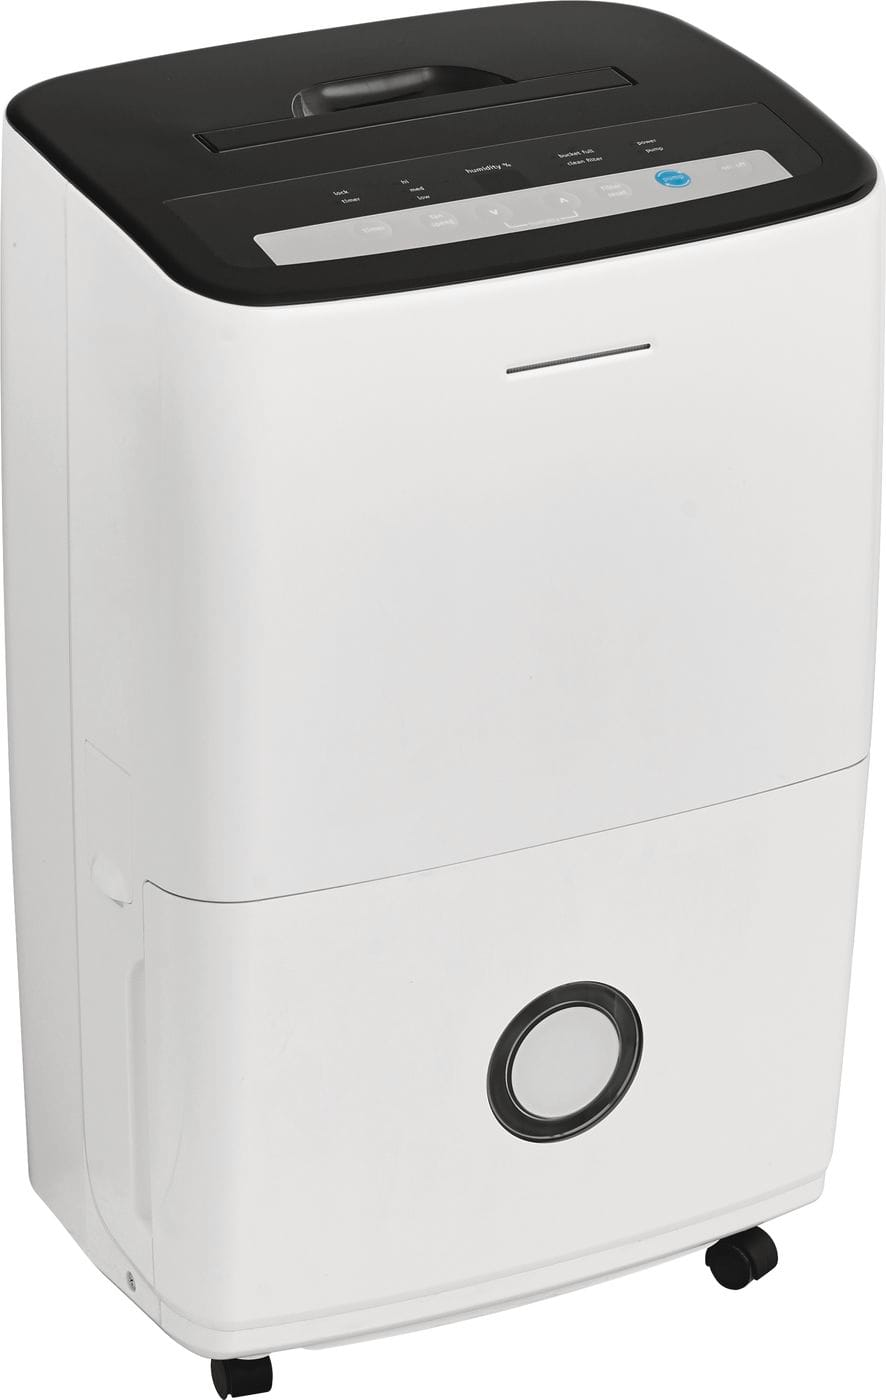 Model: FFAP7033T1 | Frigidaire Large Room 70 Pint Capacity Dehumidifier with Pump